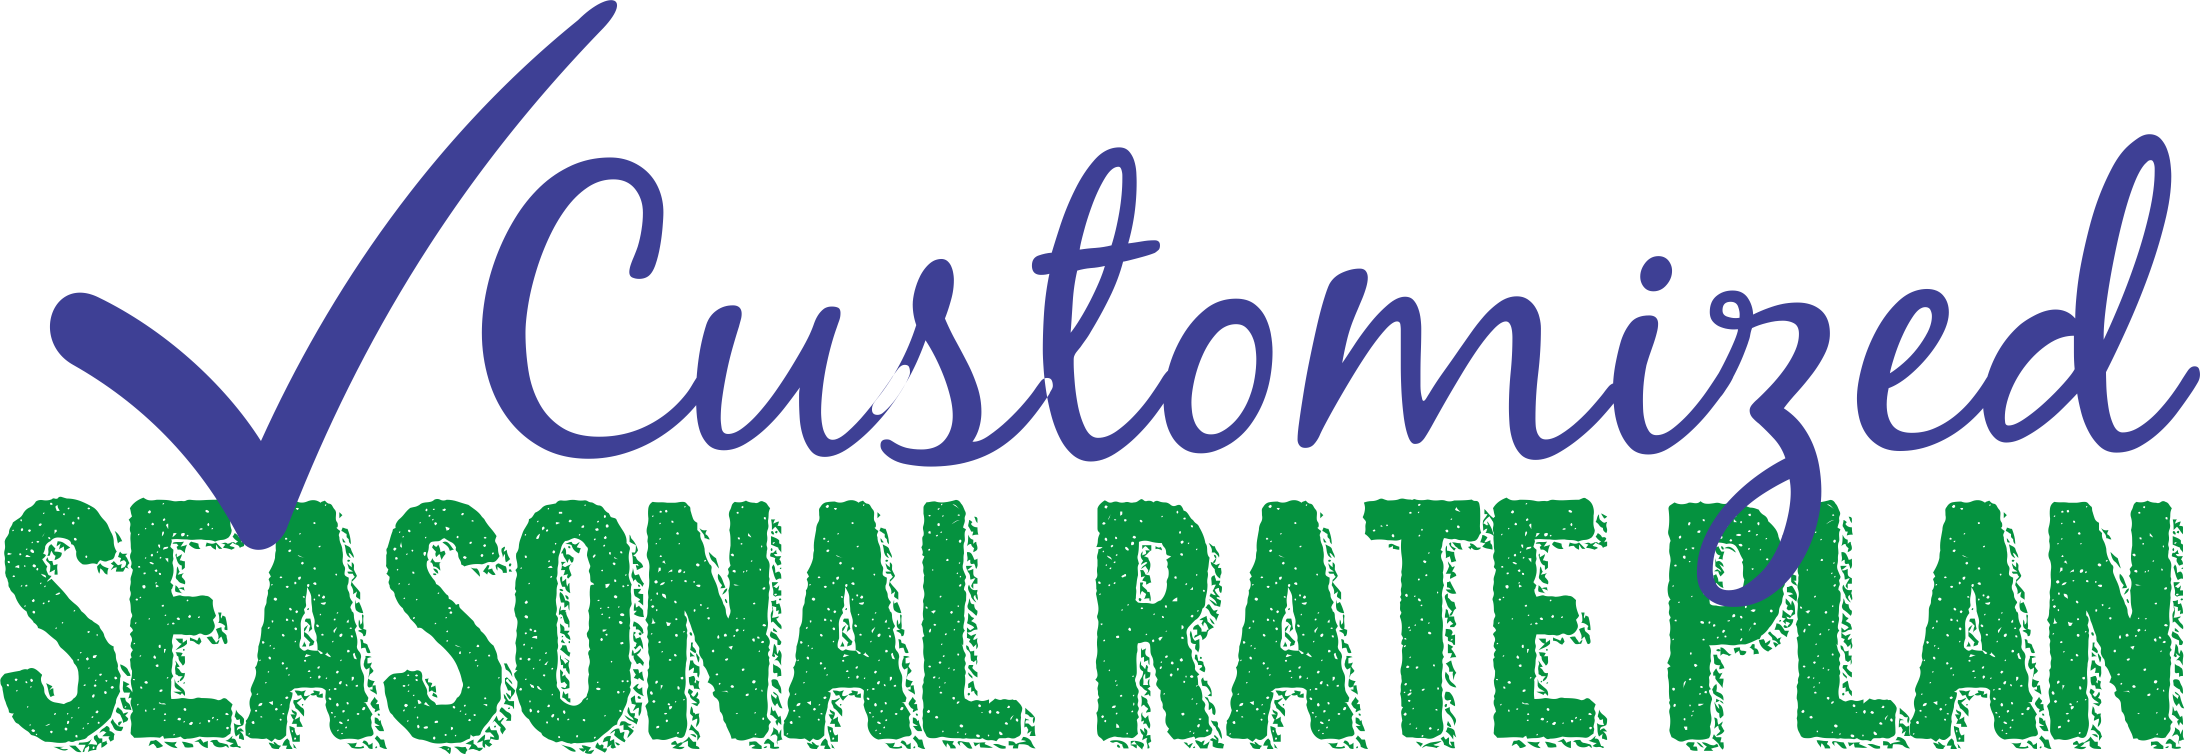 customized seasonal rate plan with check mark